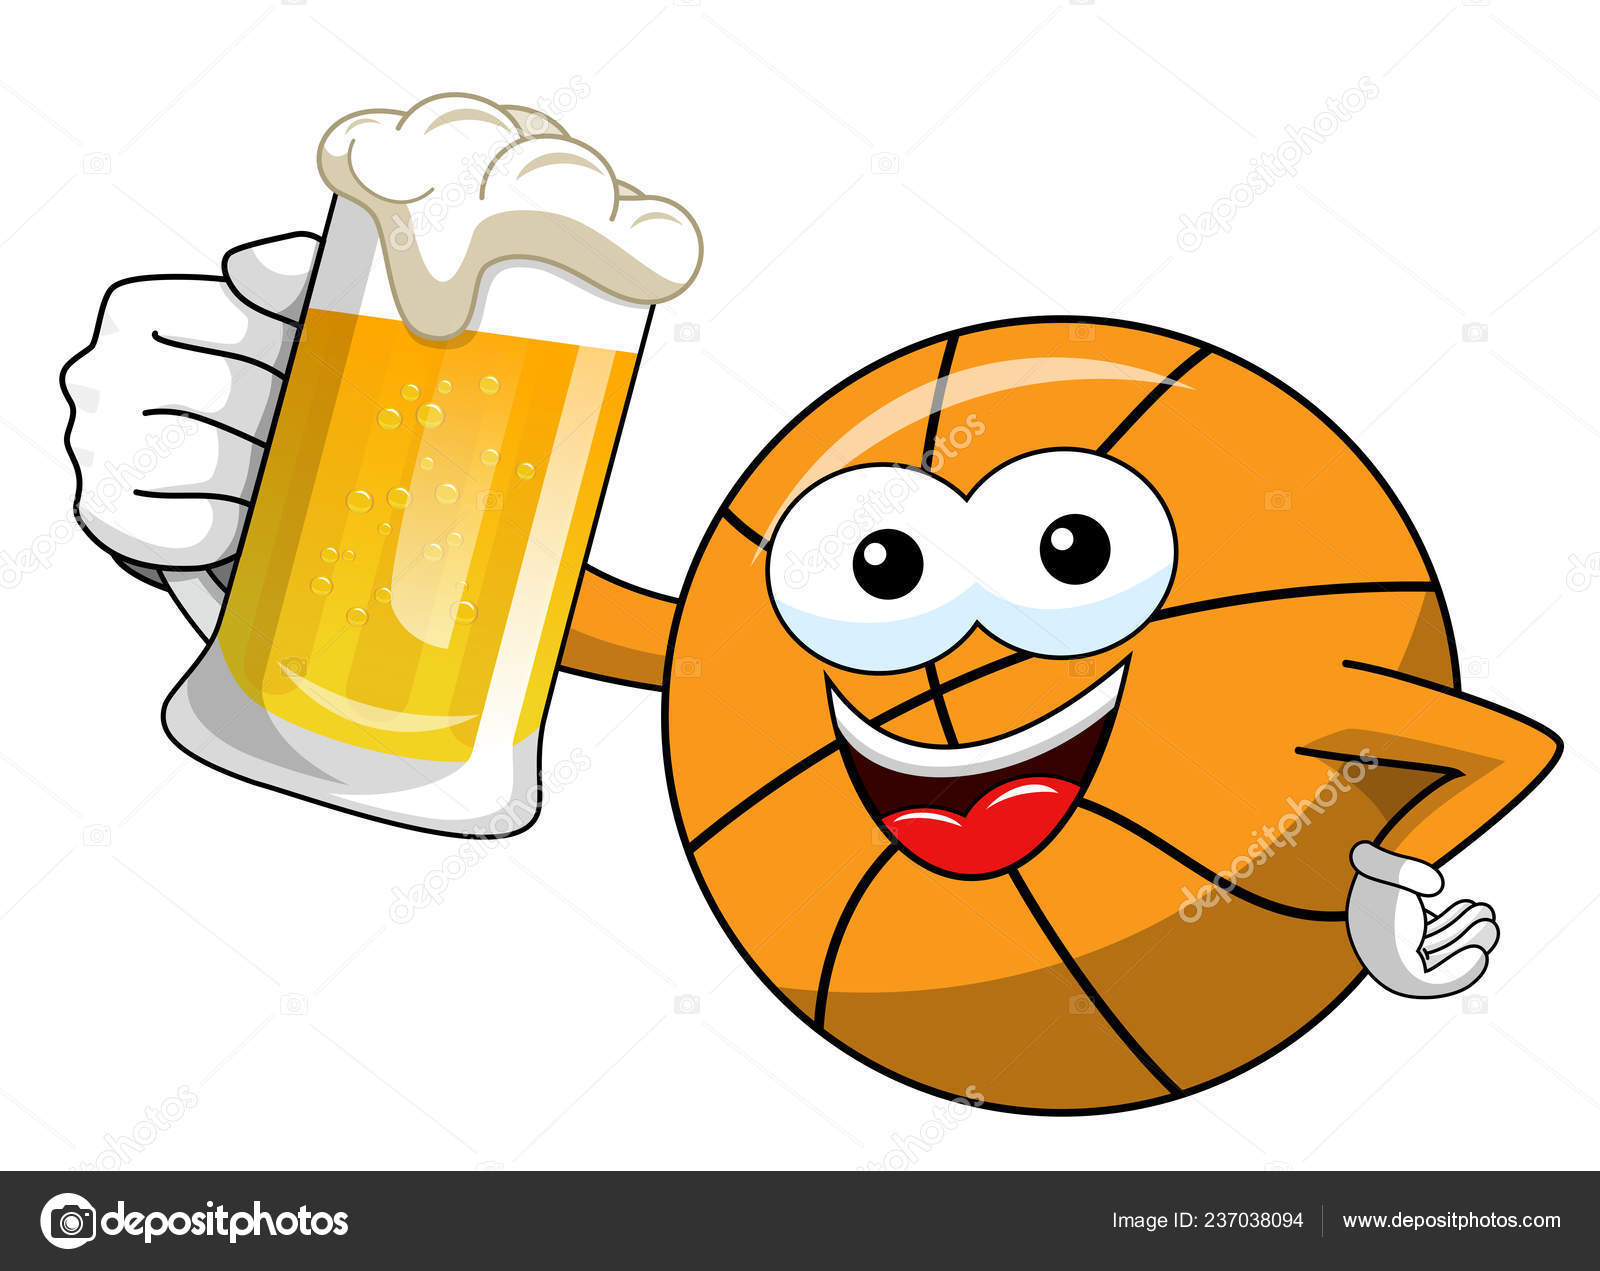 Pictures Funny Cartoon Basketball Basketball Ball Cartoon Funny Character Mug Beer Celebration Isolated White Stock Vector C Canbedone 237038094